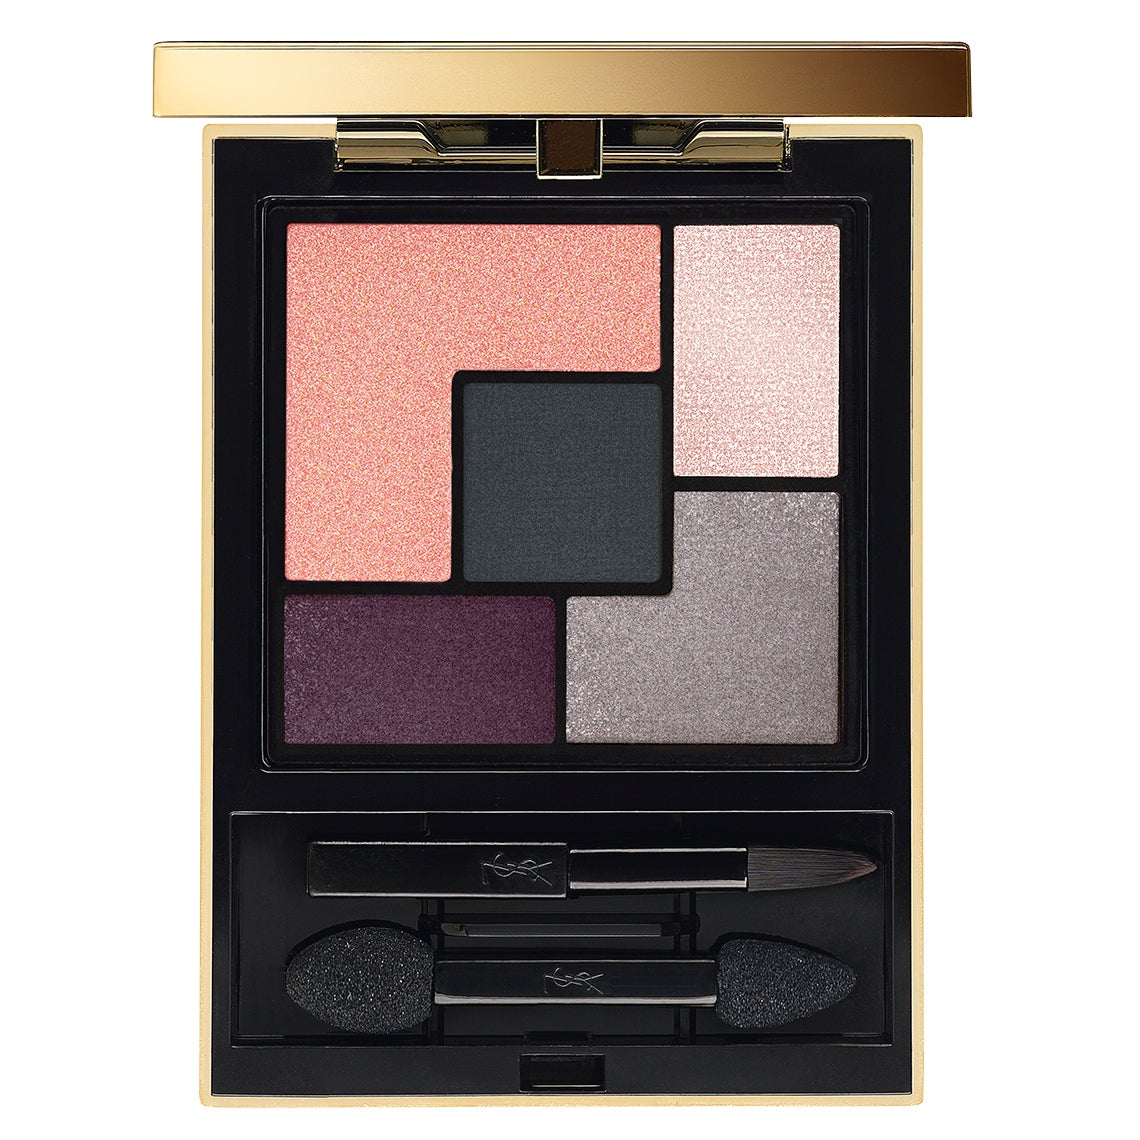 Yves Saint Laurent Mon Paris Palette